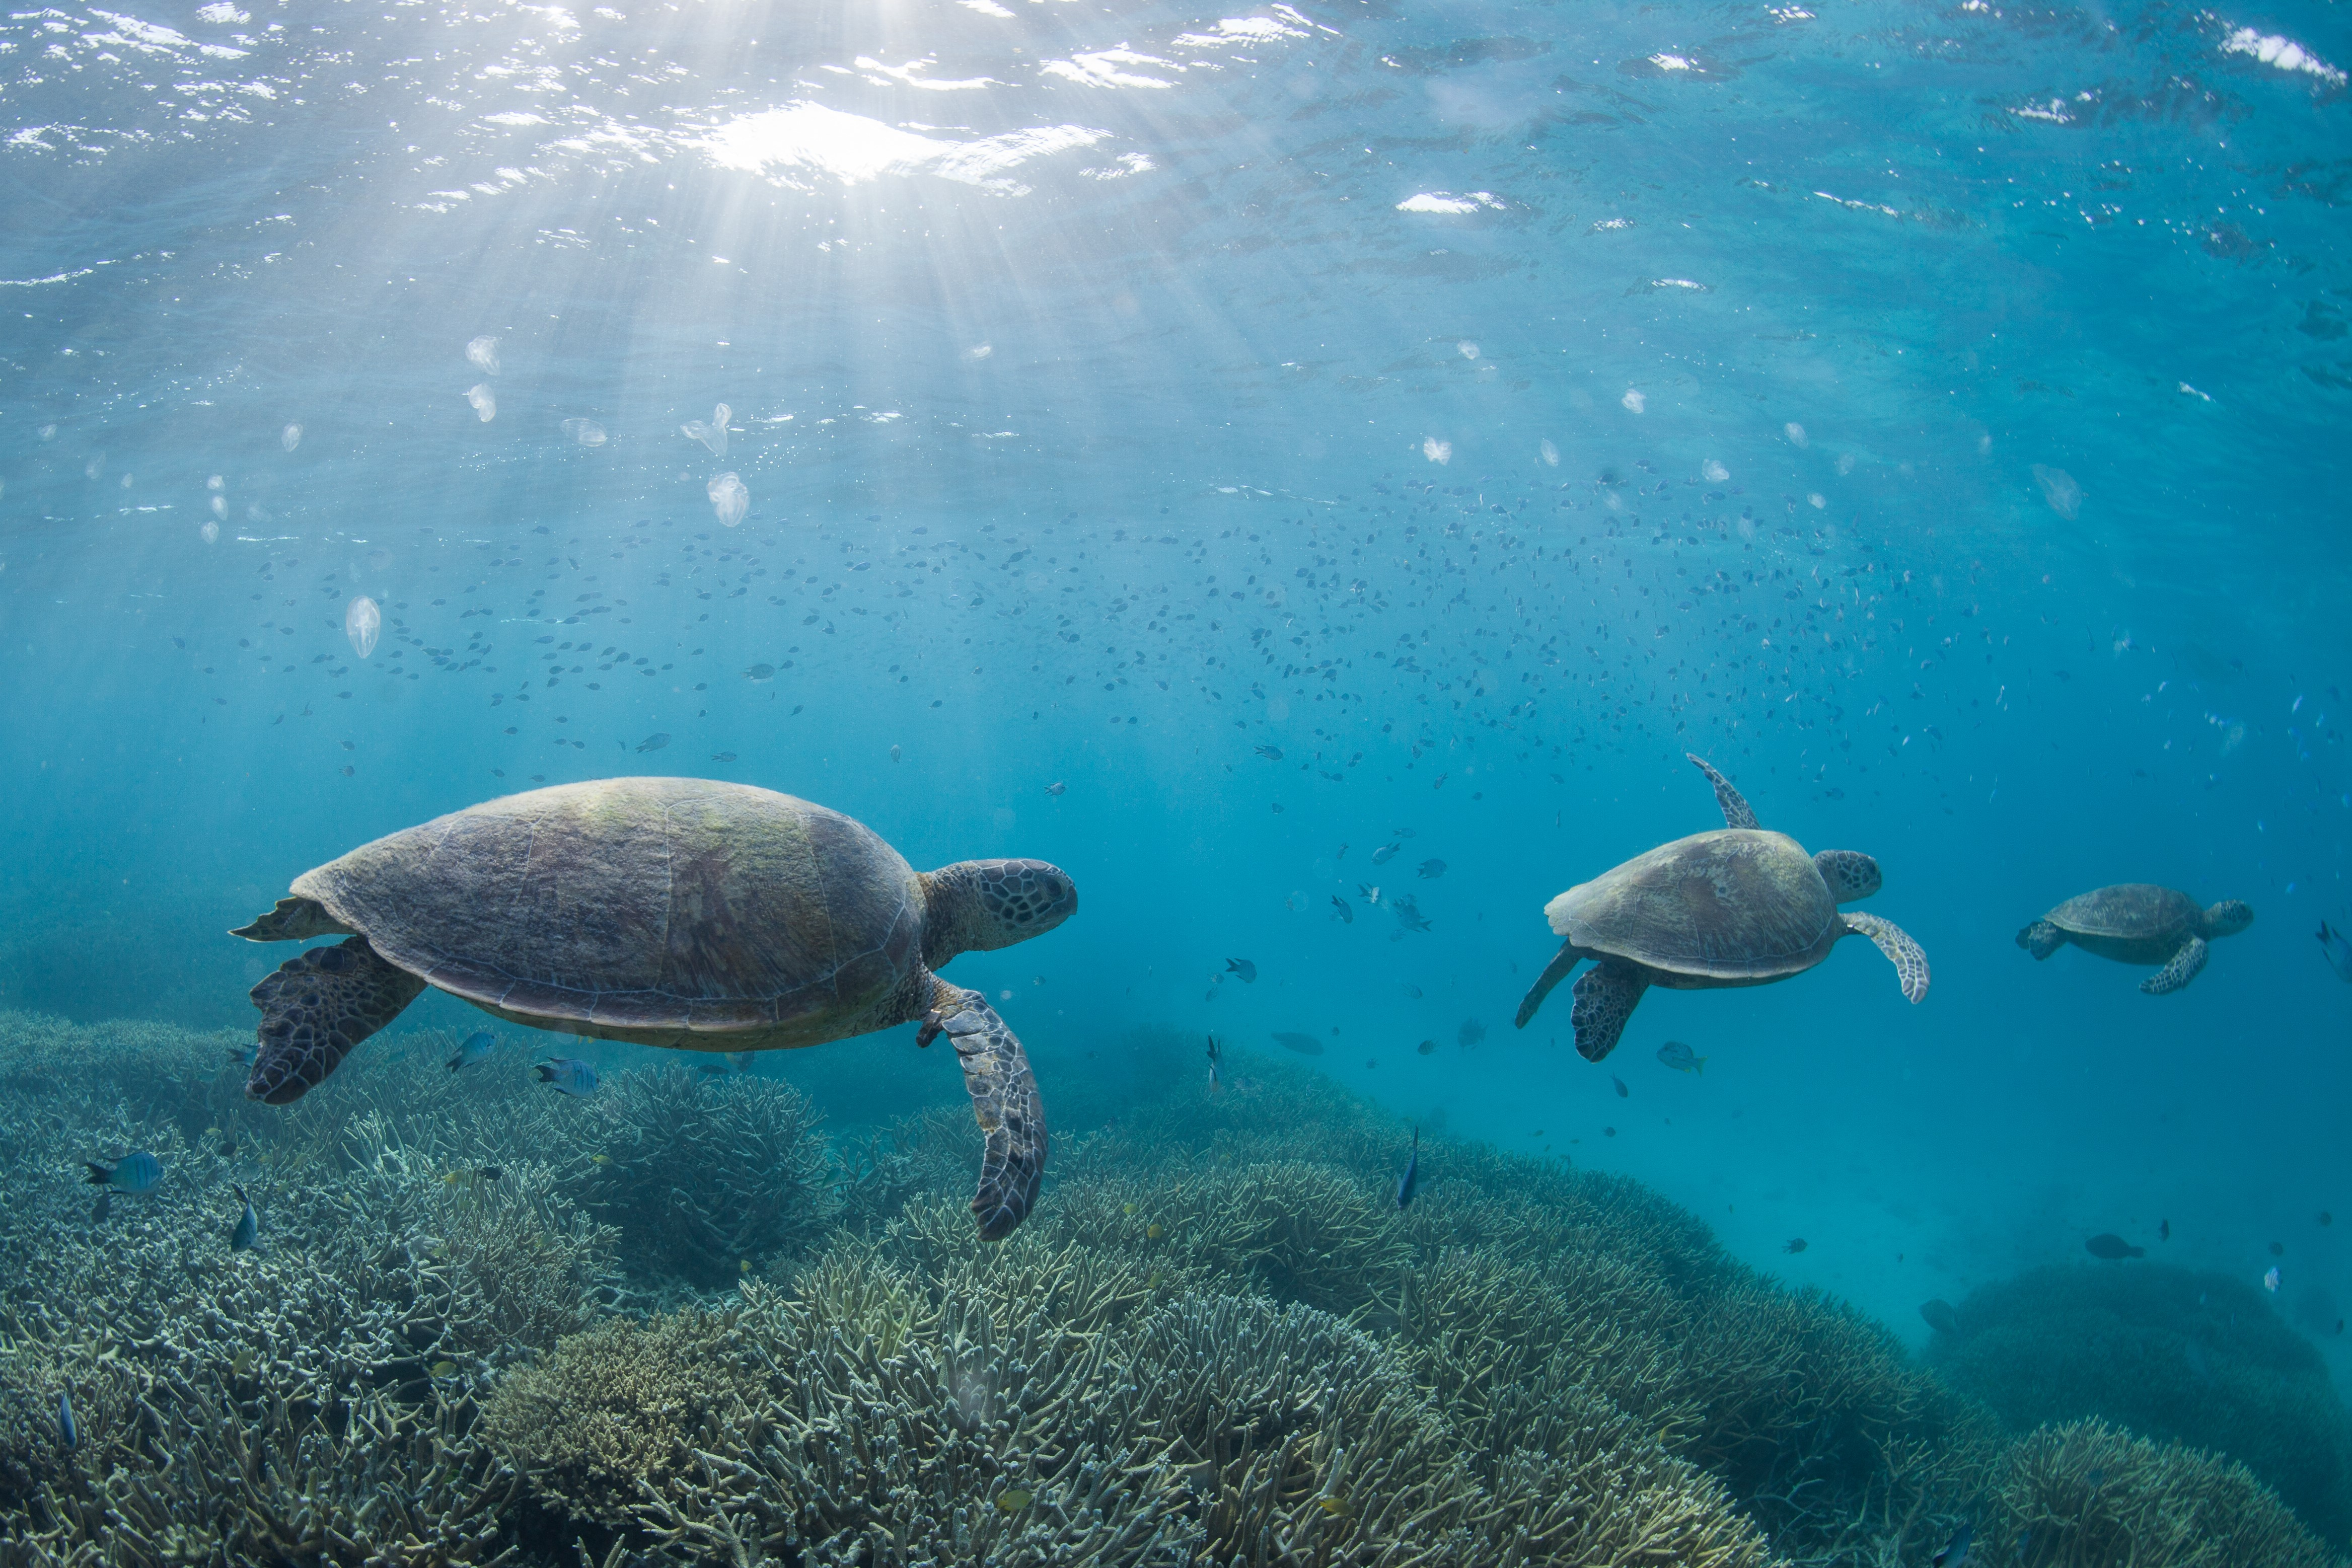 Types Of Email Accounts >> Turtles at Heron Island | The Medical Journal of Australia